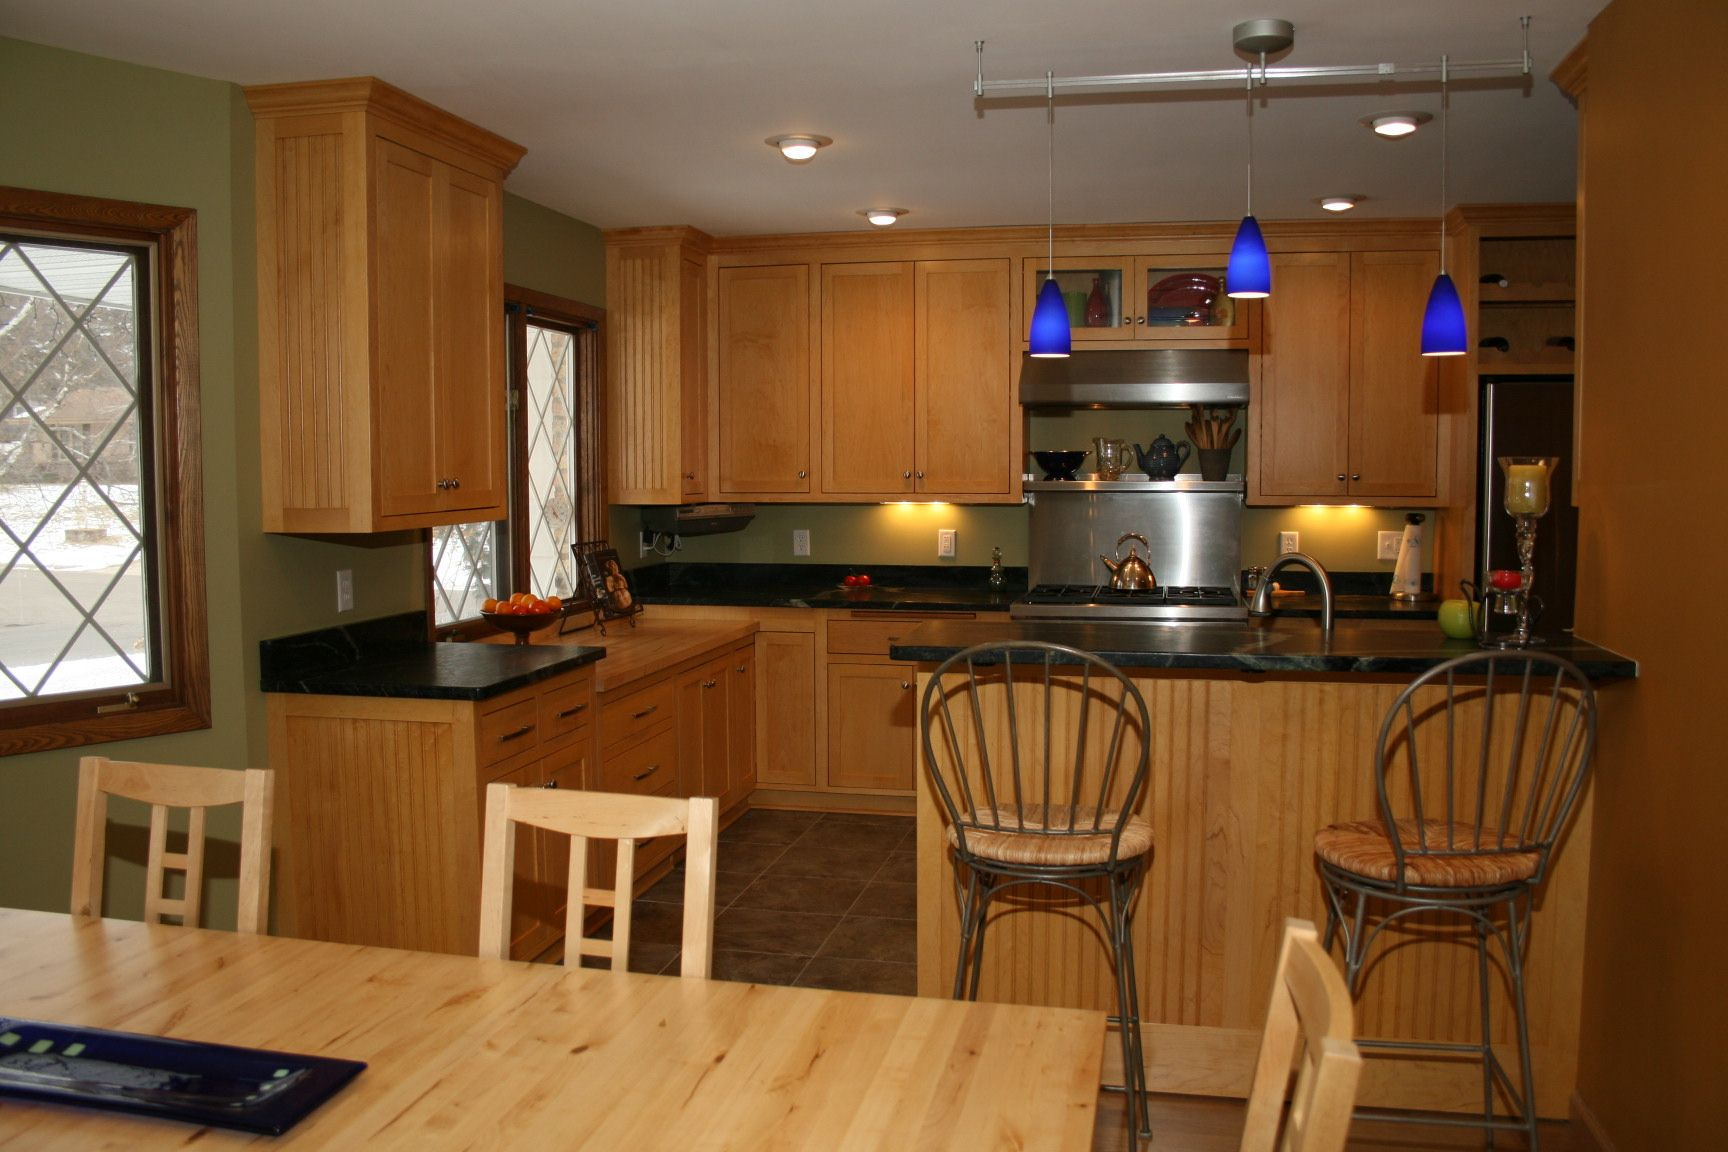 kitchens with maple cabinets Maple cabinets and soapstone countertops